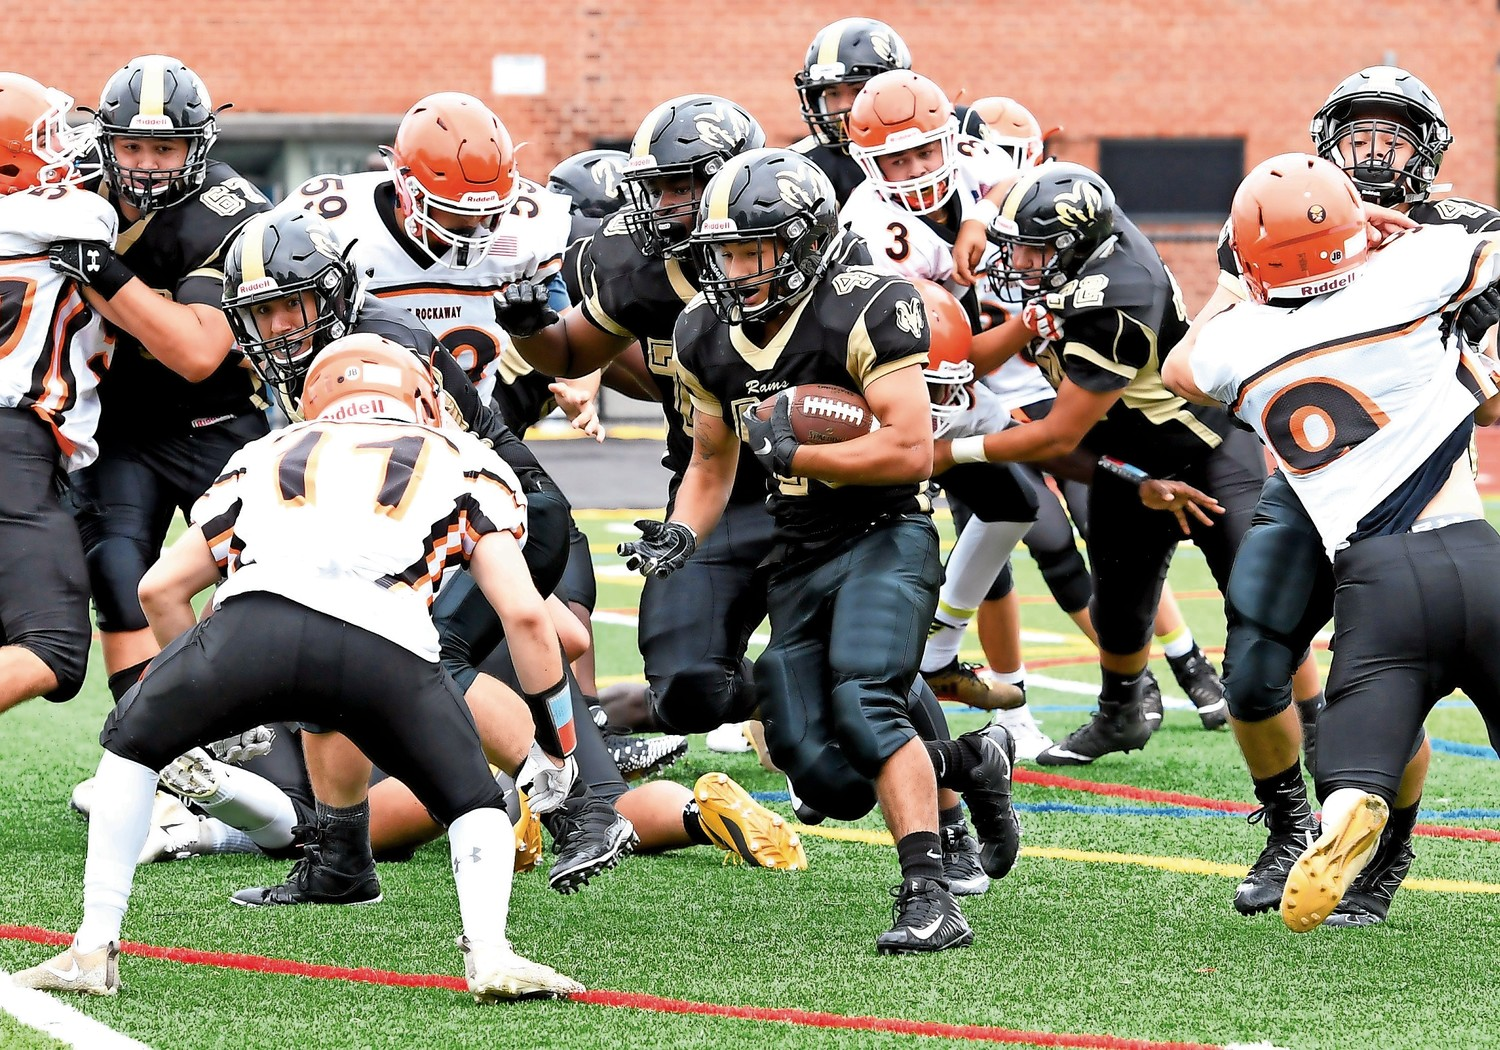 The West Hempstead Rams relied on running on the football in its victory on Sept. 8.